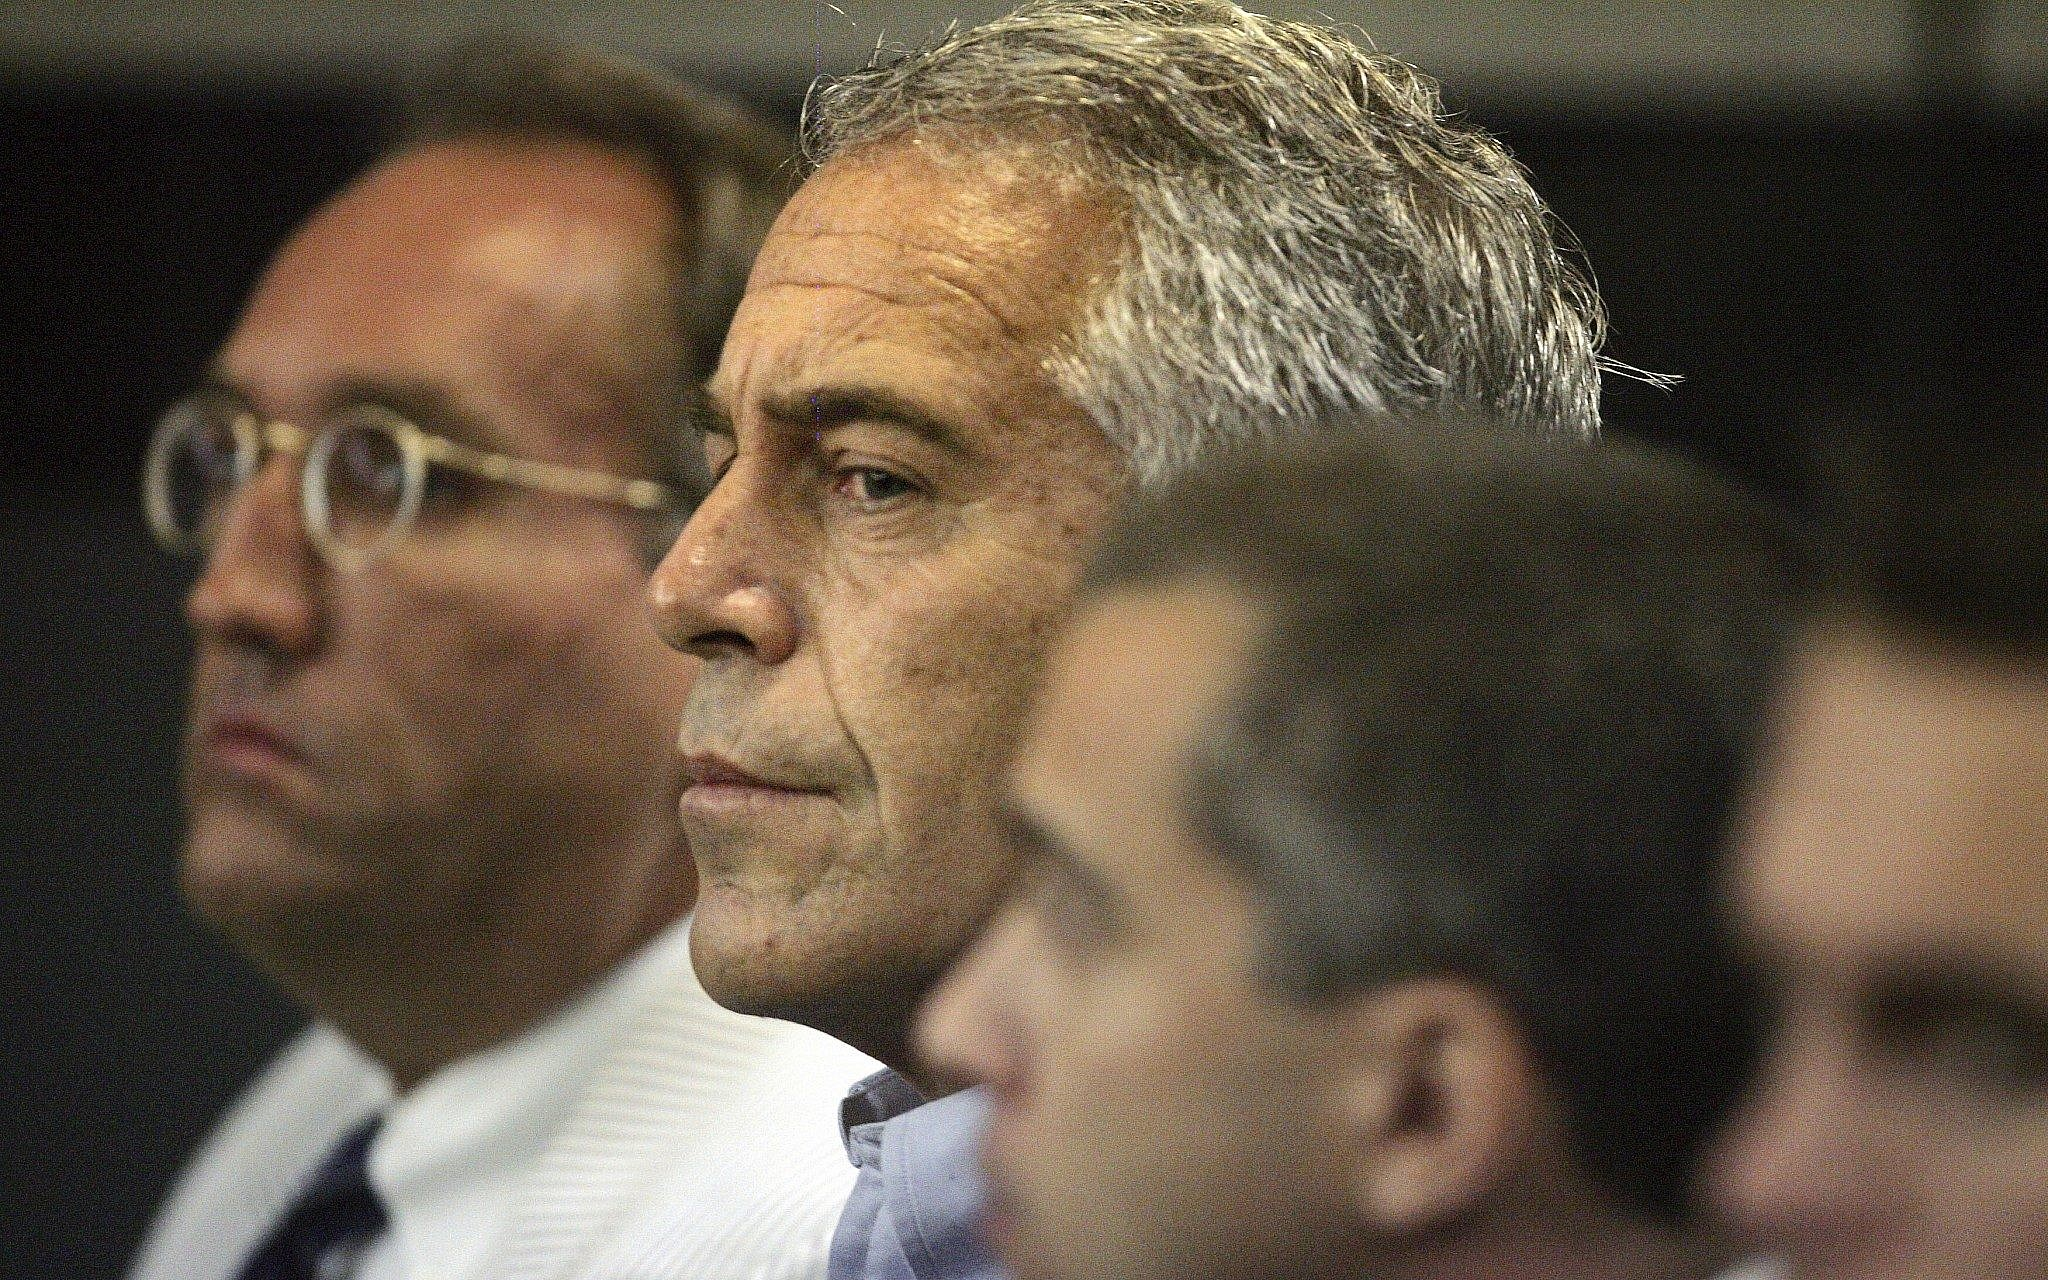 Report: Epstein wanted to spread his DNA by impregnating 20